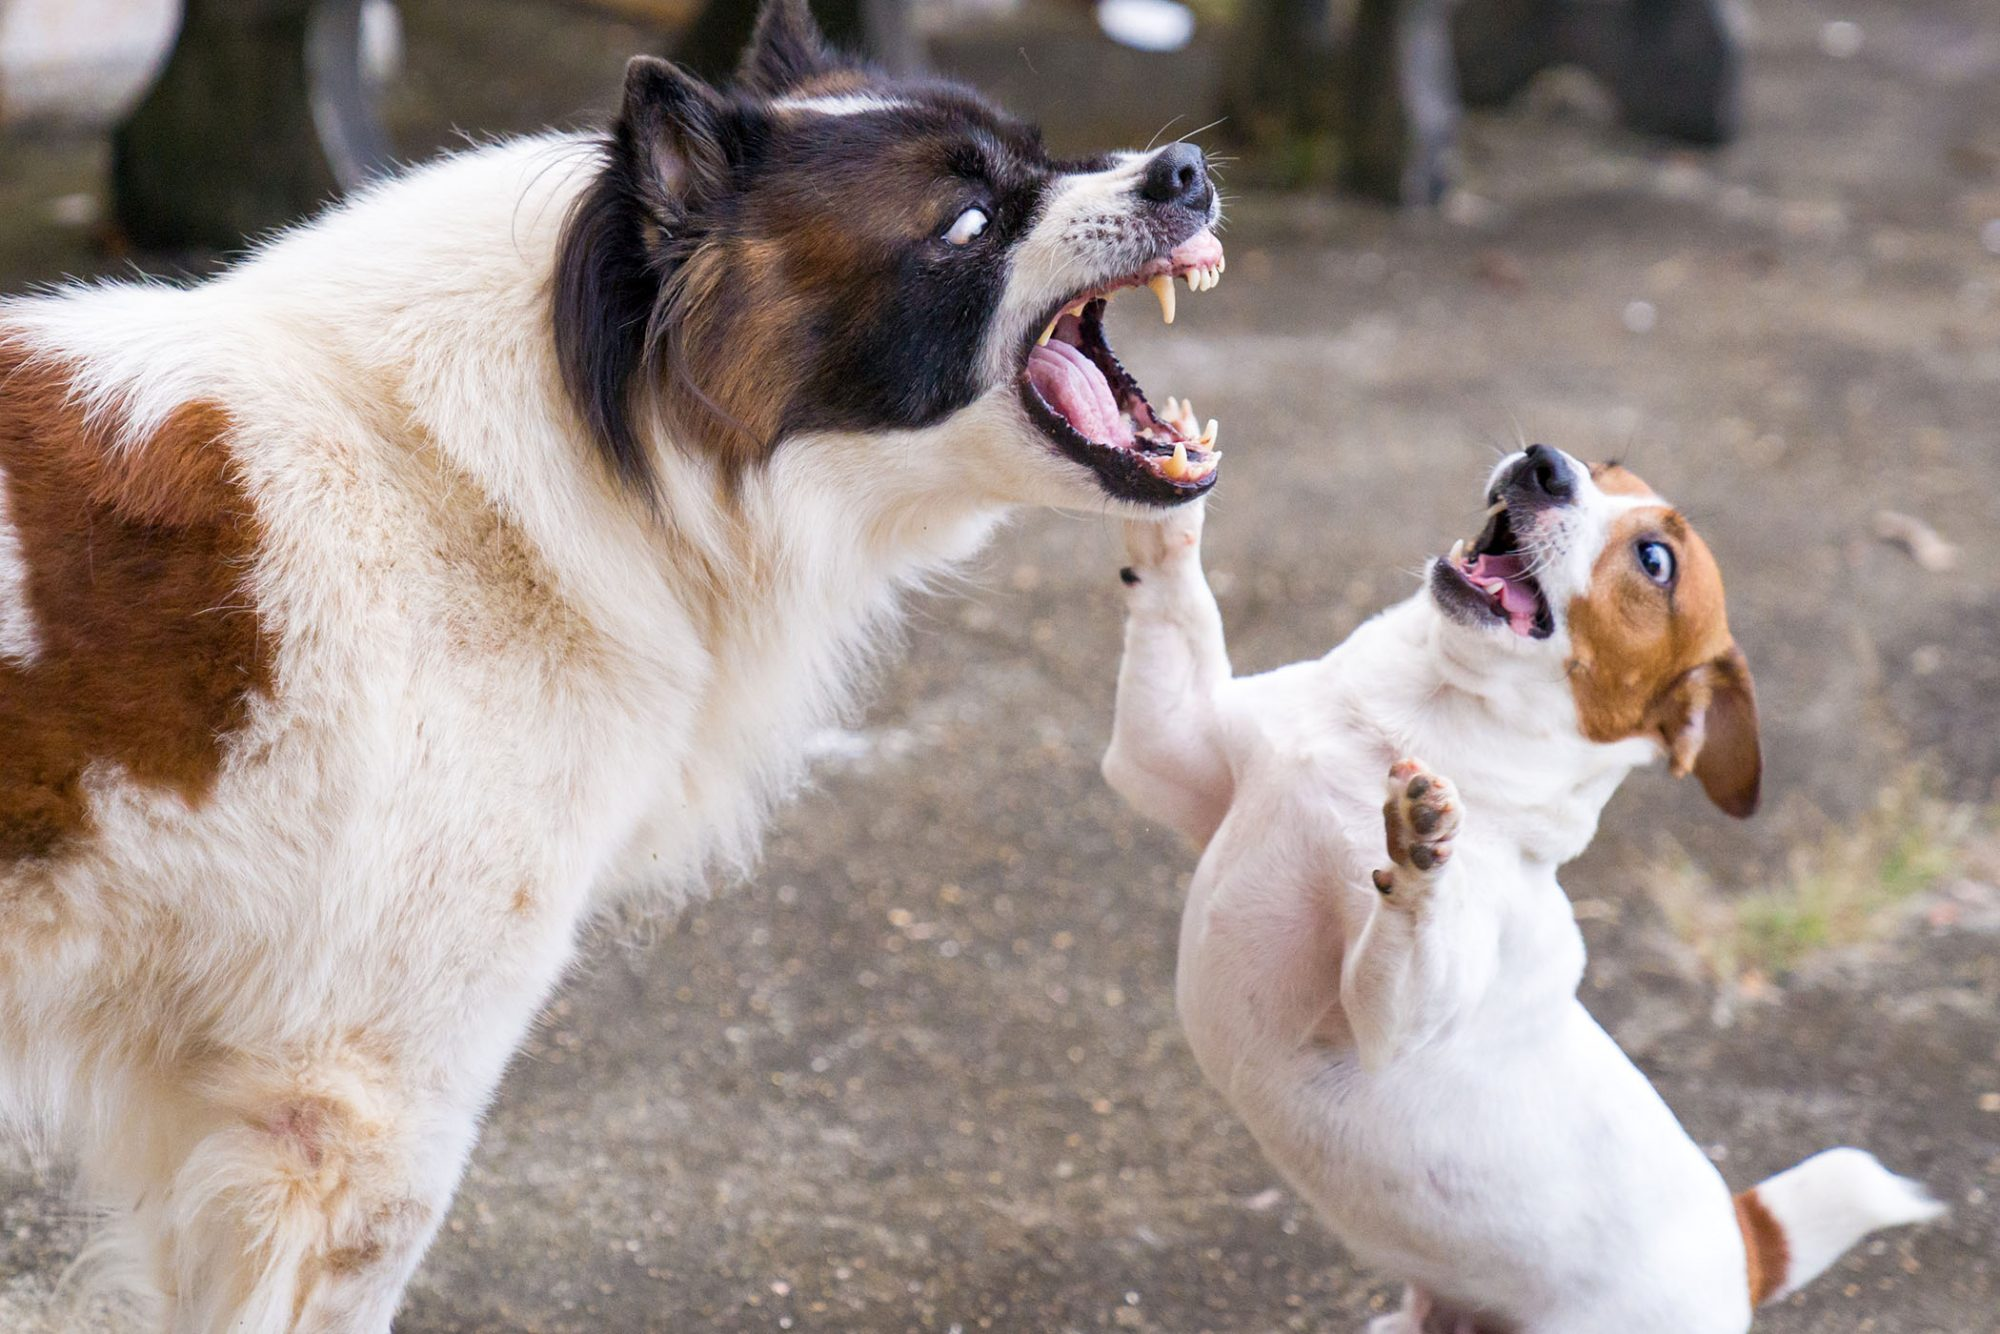 two dogs aggressively playing